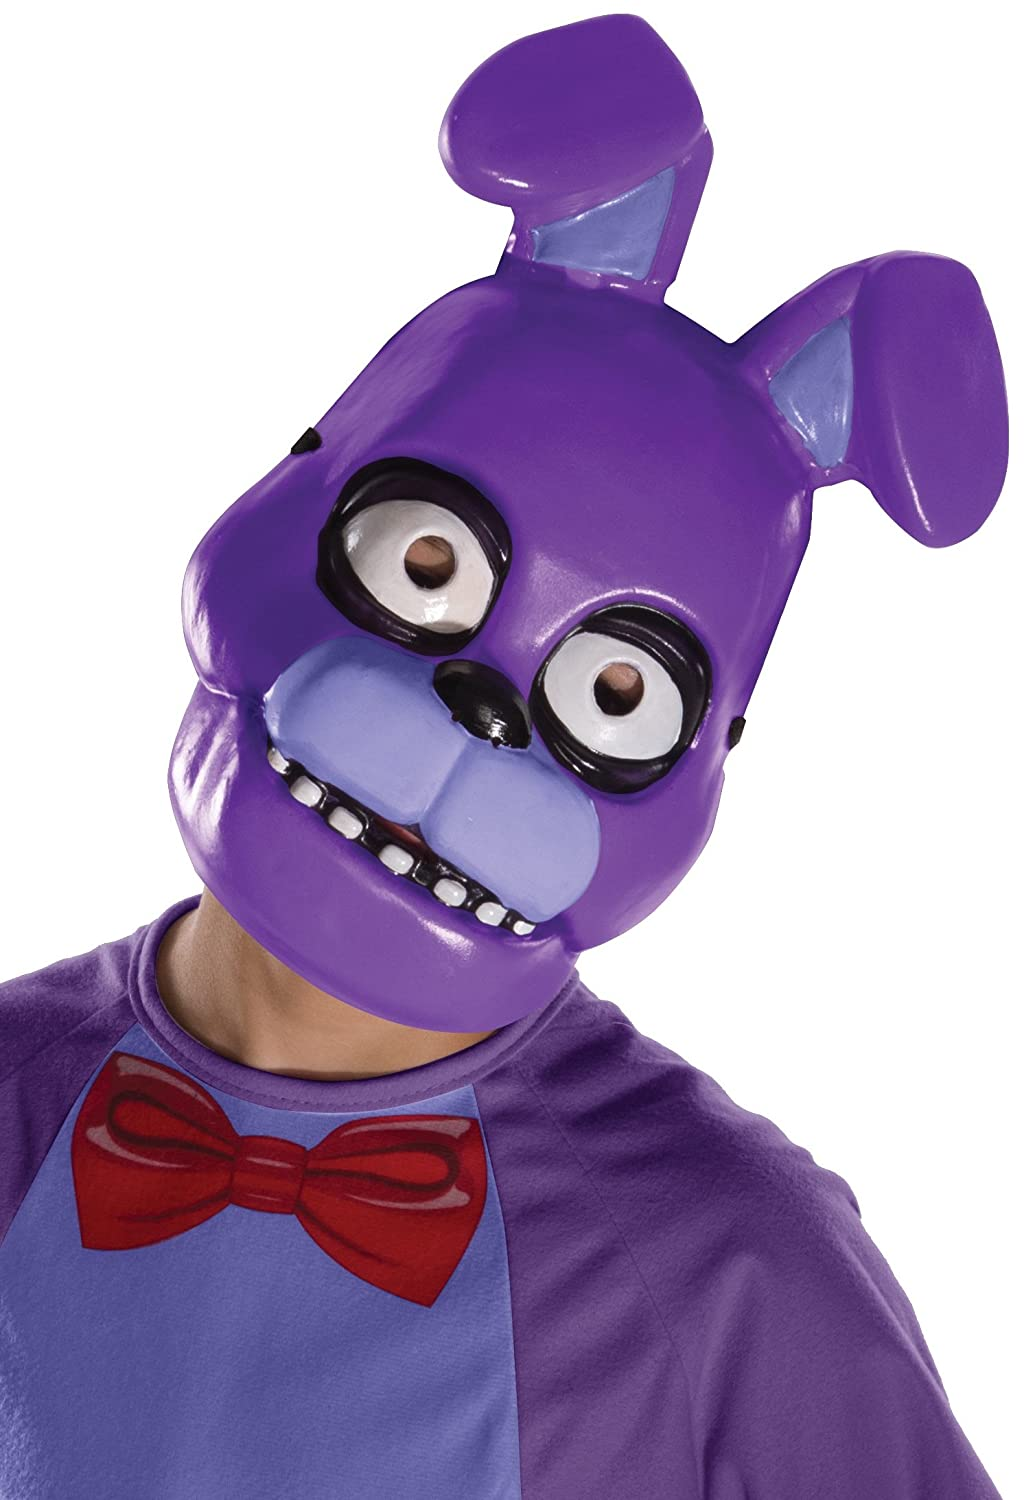 Fnaf bonnie costume for sale - Amazon Com Five Nights At Freddy S Bonnie Child S Half Mask Toys Games